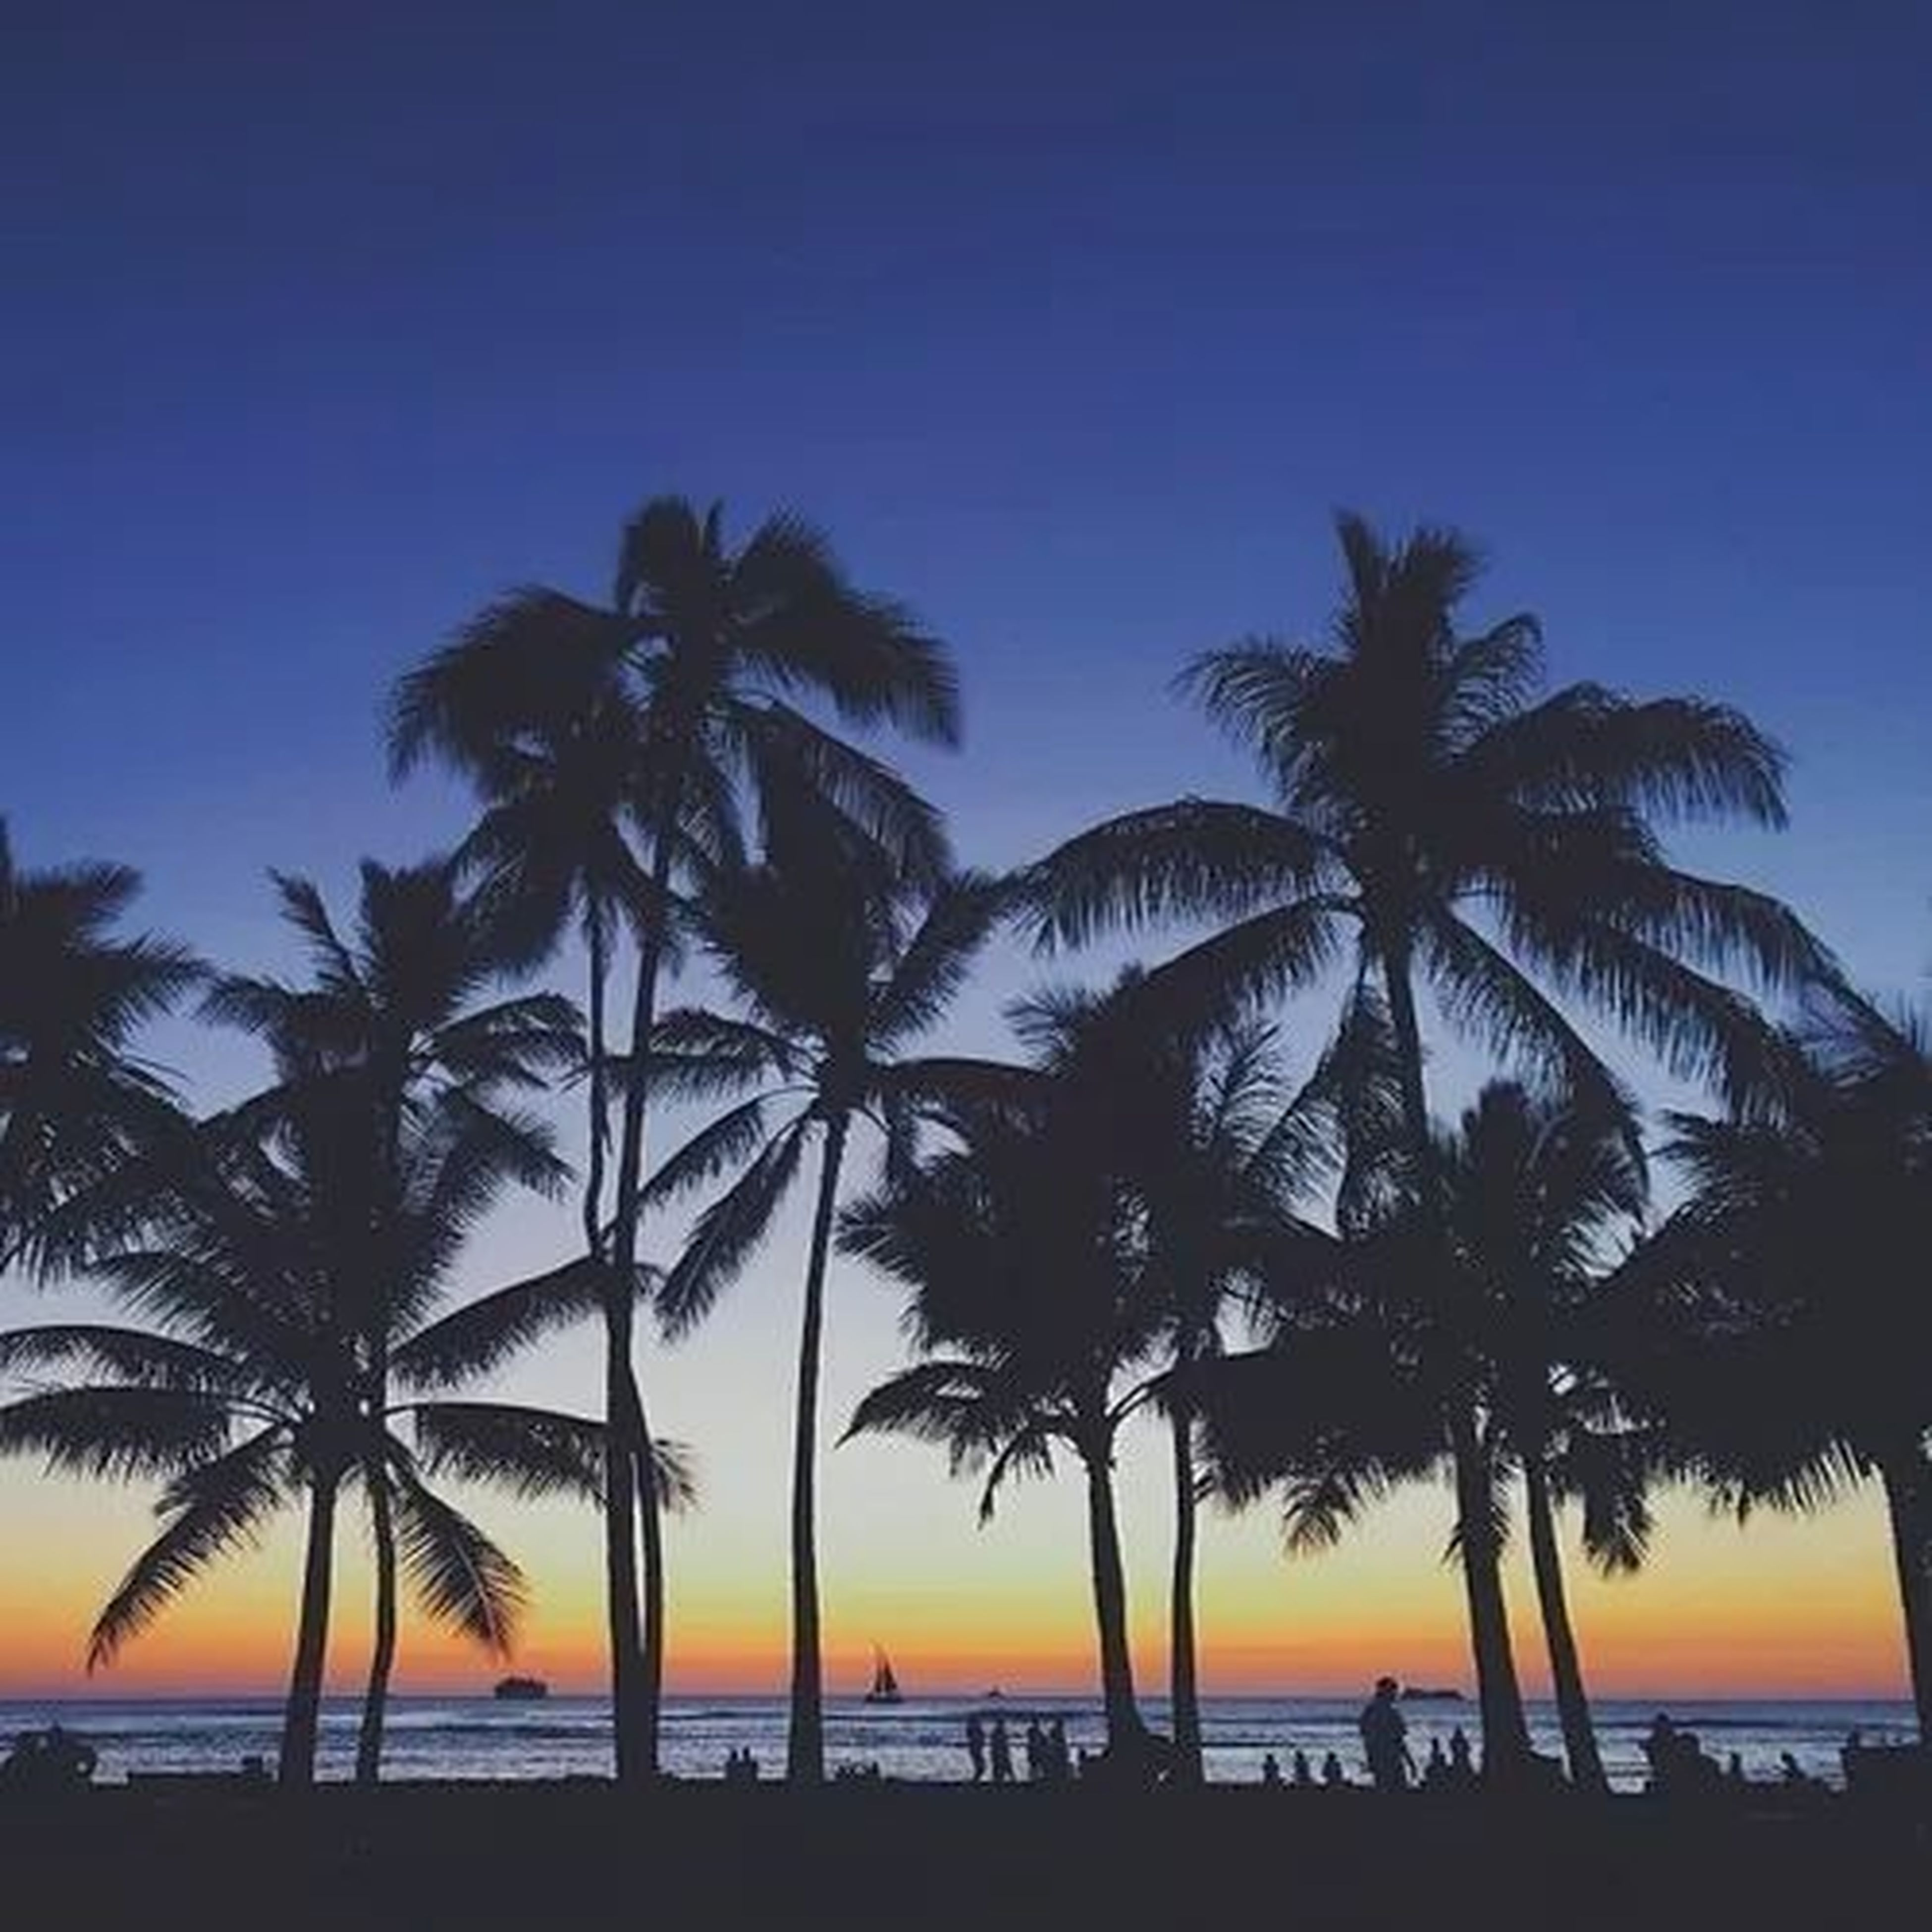 palm tree, sea, water, beach, horizon over water, tranquility, tranquil scene, scenics, tree, beauty in nature, sunset, silhouette, nature, sky, shore, idyllic, tree trunk, vacations, incidental people, blue